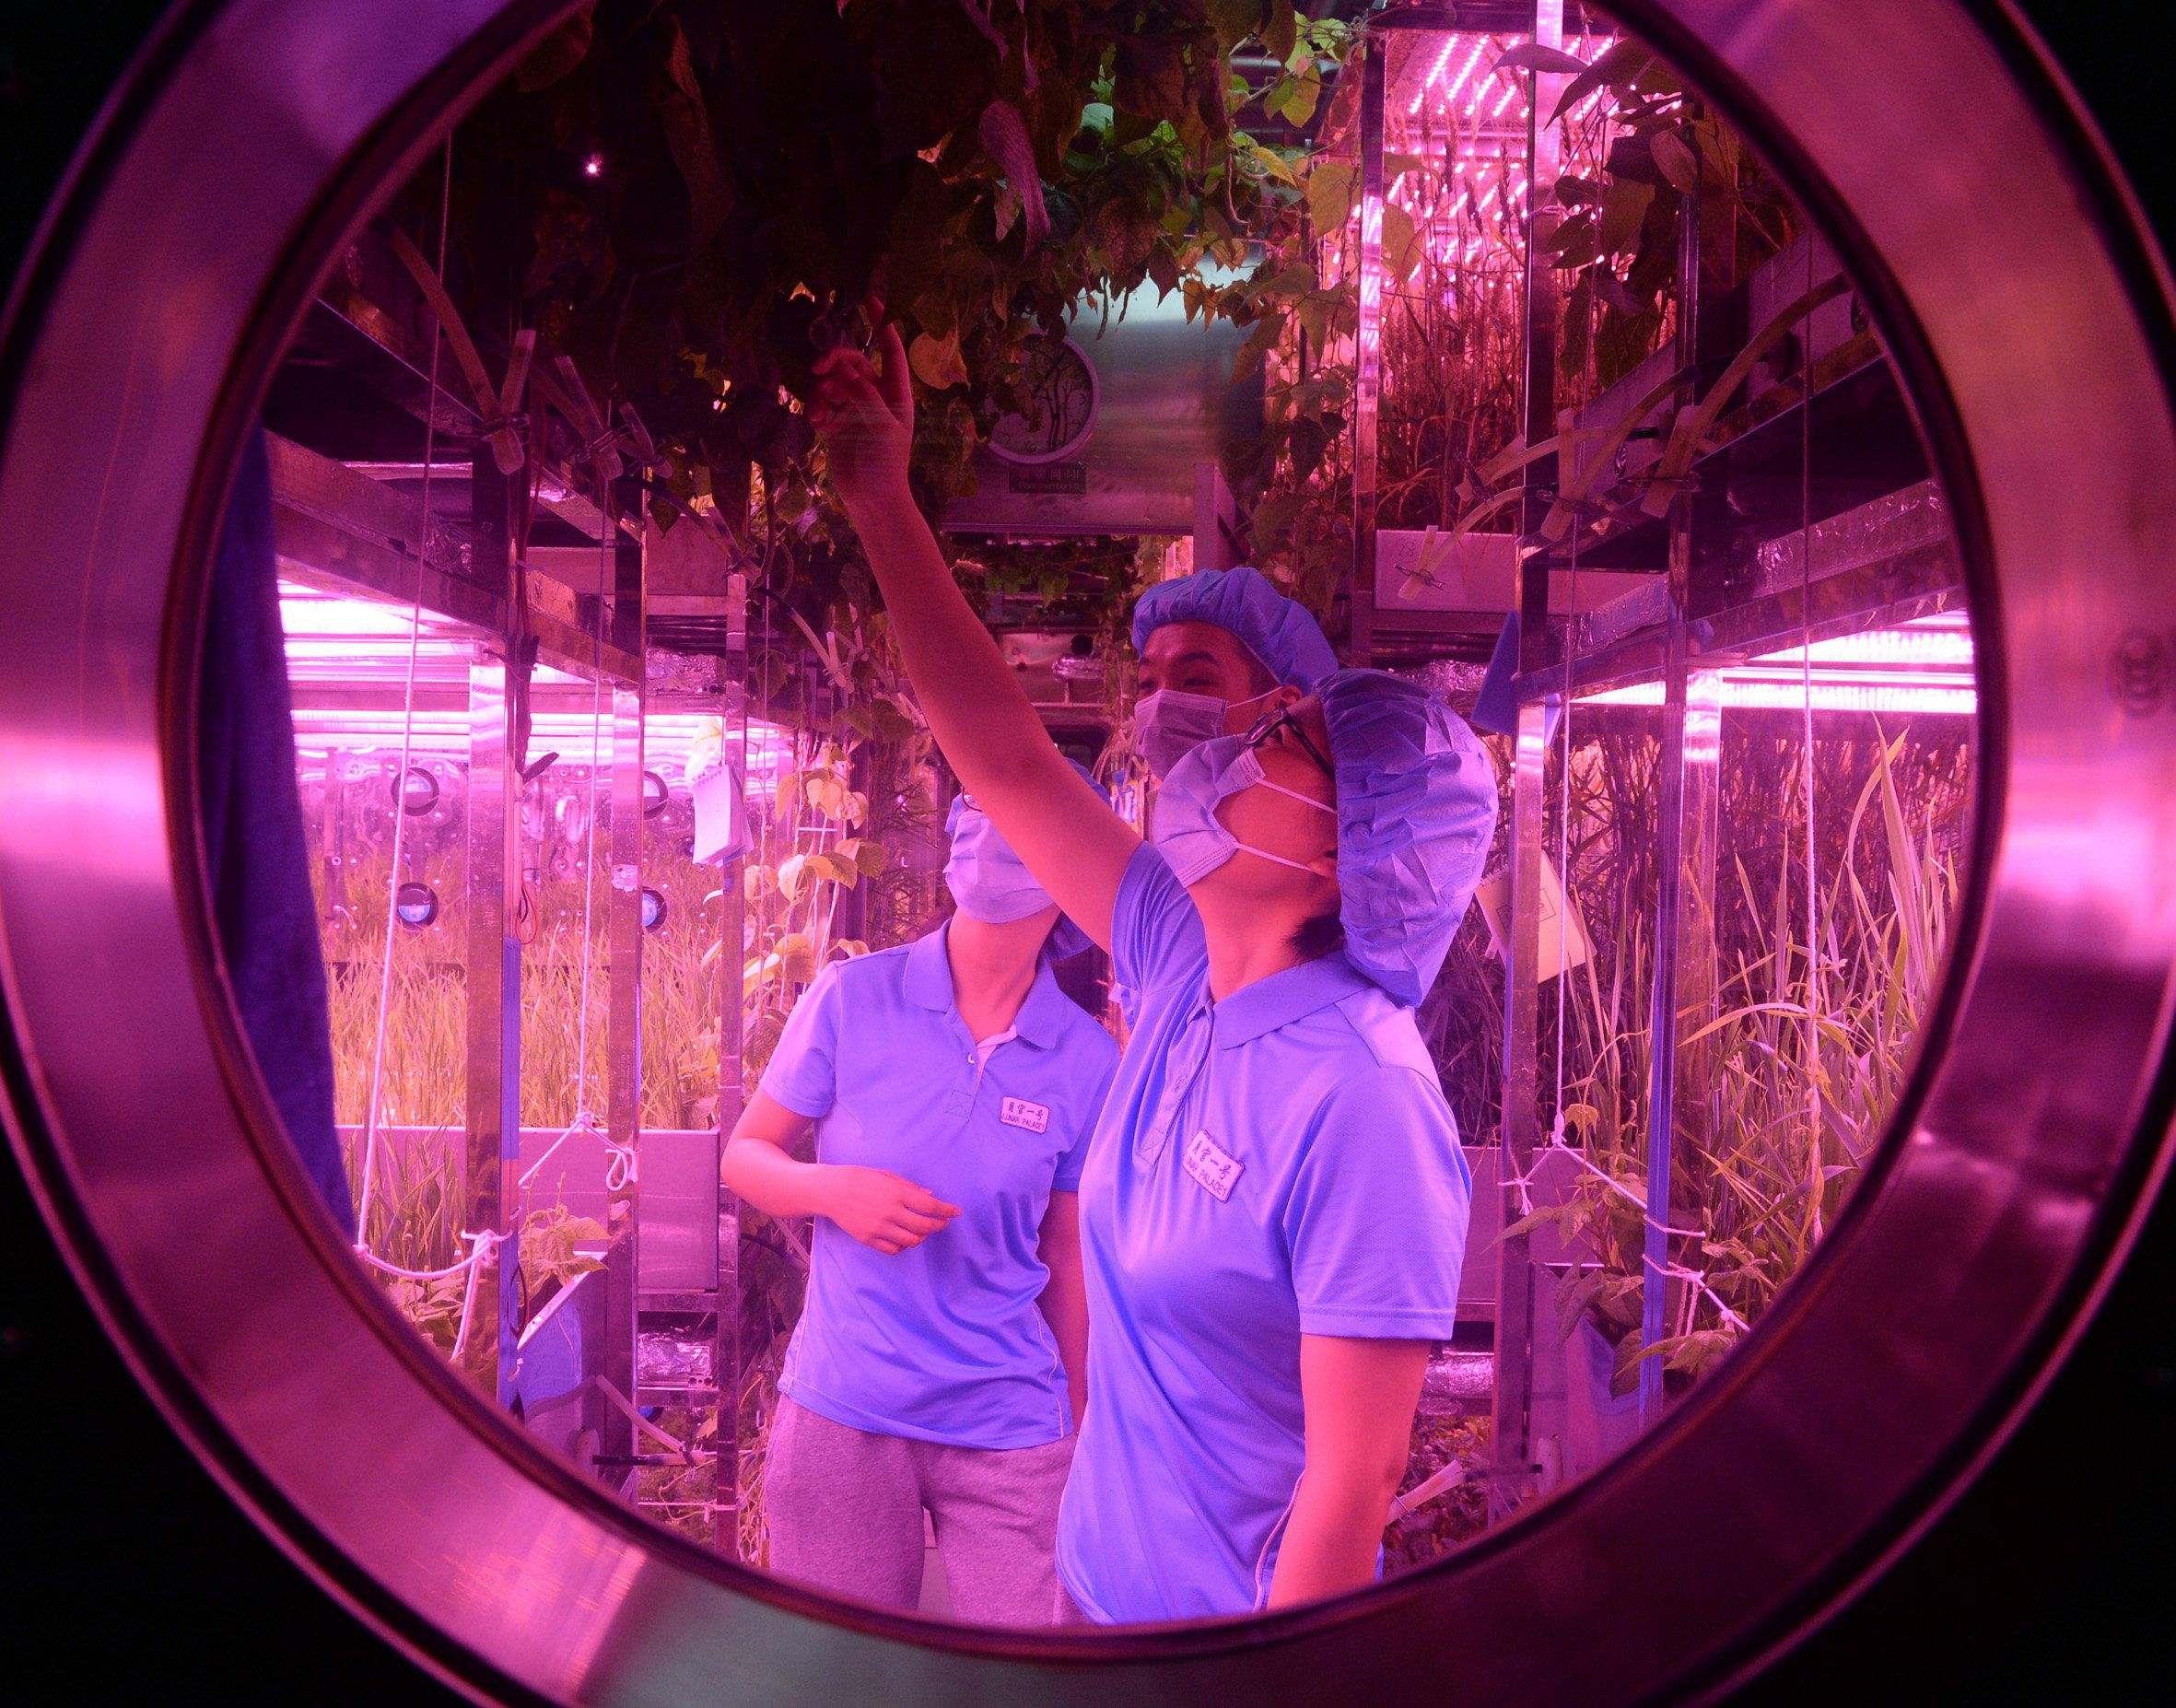 Student volunteers are seen inside the Lunar Palace 1, a laboratory simulating a lunar-like environment, in Beijing on May 10, 2017.   Chinese students will live in the laboratory simulating a lunar-like environment for up to 200 days as Beijing prepares for its long-term goal of putting humans on the moon. Four postgraduate students from the capital's astronautics research university Beihang entered the 160-square-metre (1,720-square-foot) cabin -- dubbed the 'Yuegong-1', or 'Lunar Palace' -- on May 10, state media reported. / AFP PHOTO / STR / China OUT        (Photo credit should read STR/AFP/Getty Images)